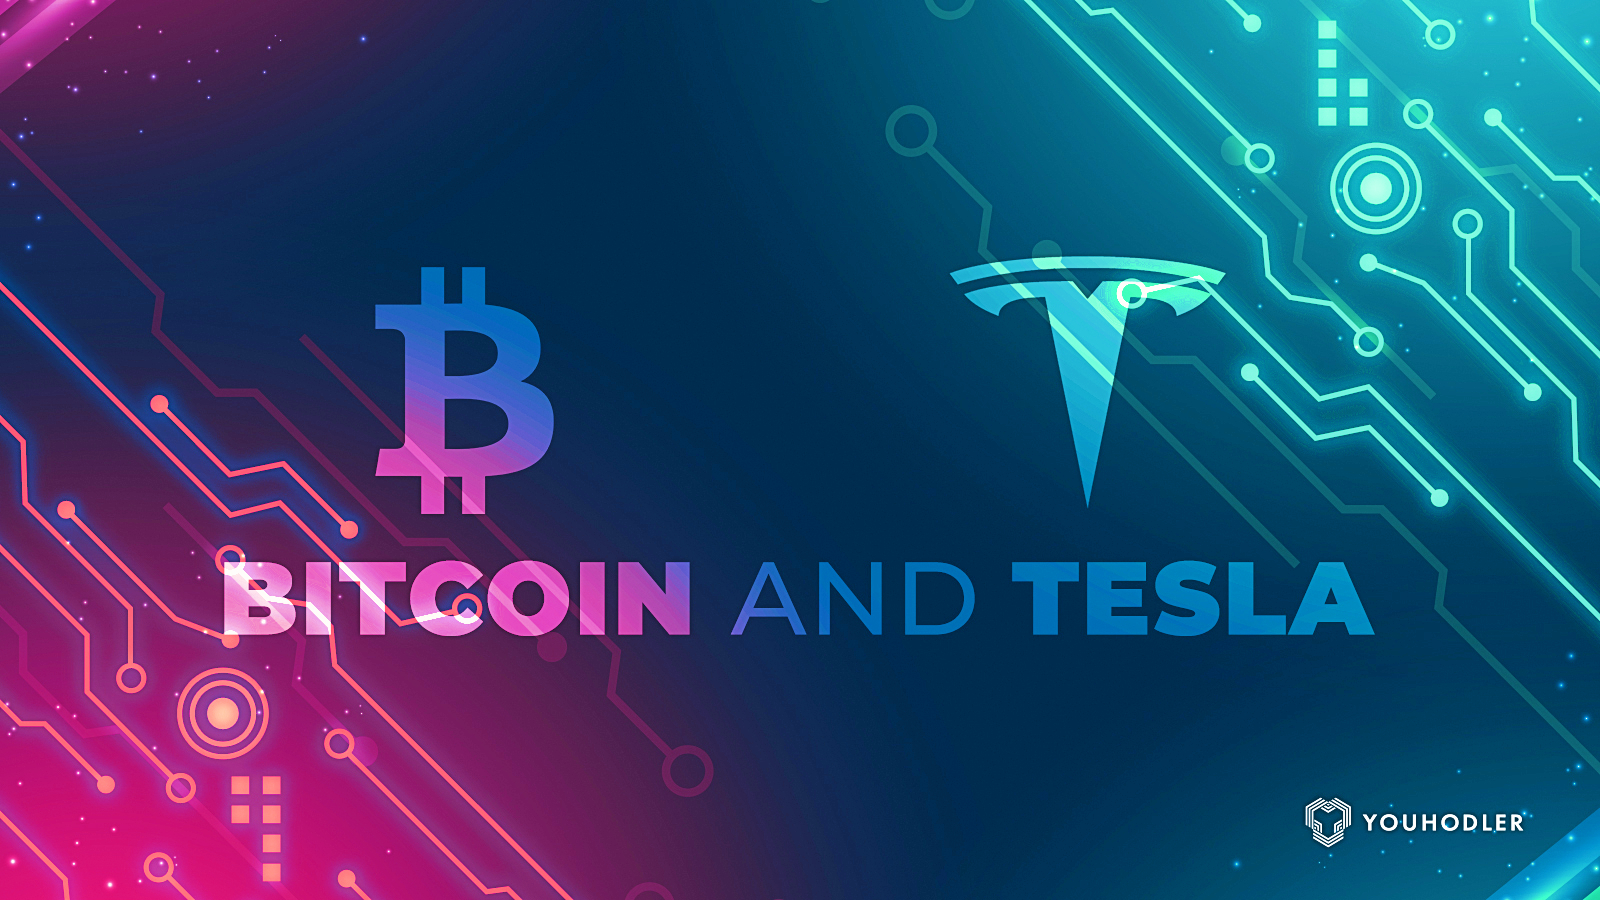 Tesla and Bitcoin logos against a colorful backdrop